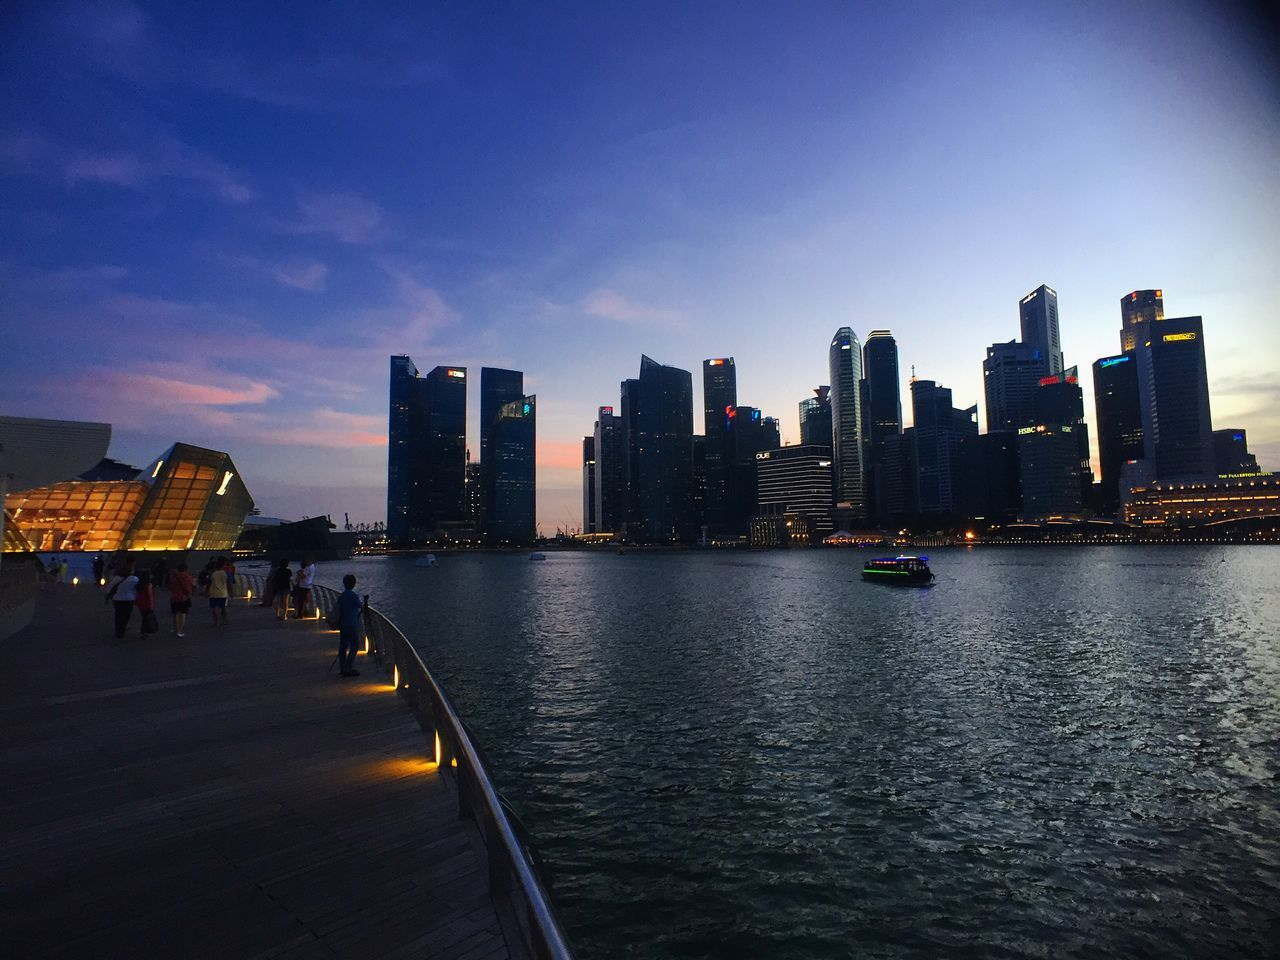 architecture, building exterior, built structure, skyscraper, city, water, sky, modern, urban skyline, cityscape, travel destinations, city life, outdoors, sea, illuminated, no people, day